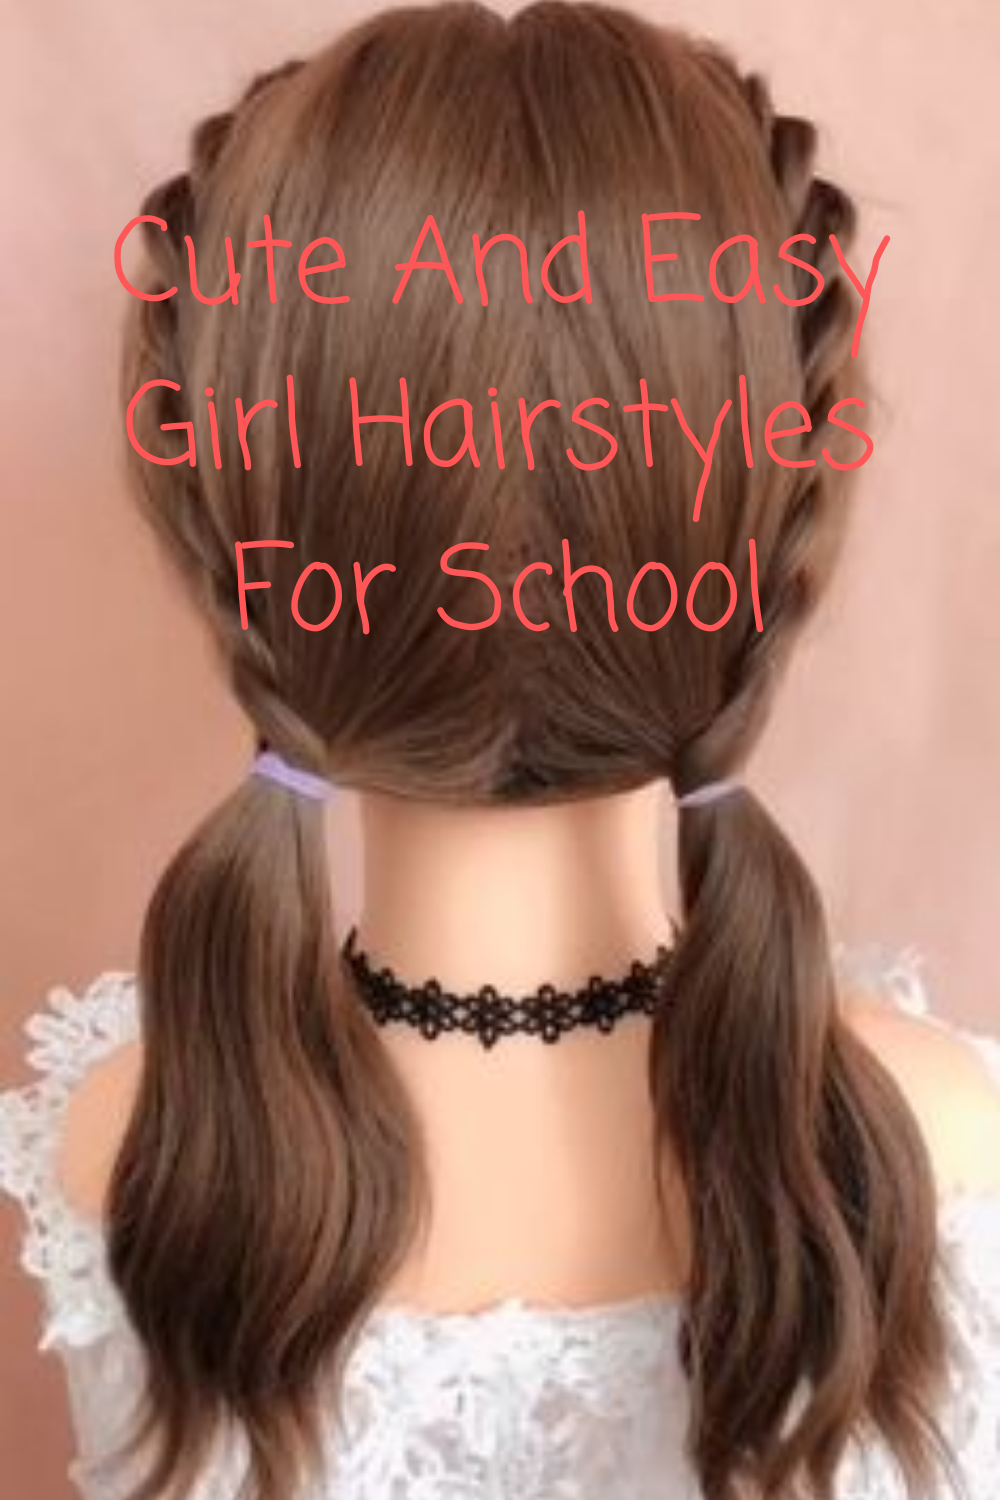 Cute And Easy Girl Hairstyles For School In 2020 Girls Hairstyles Easy Kids Hairstyles Girls Old Hairstyles